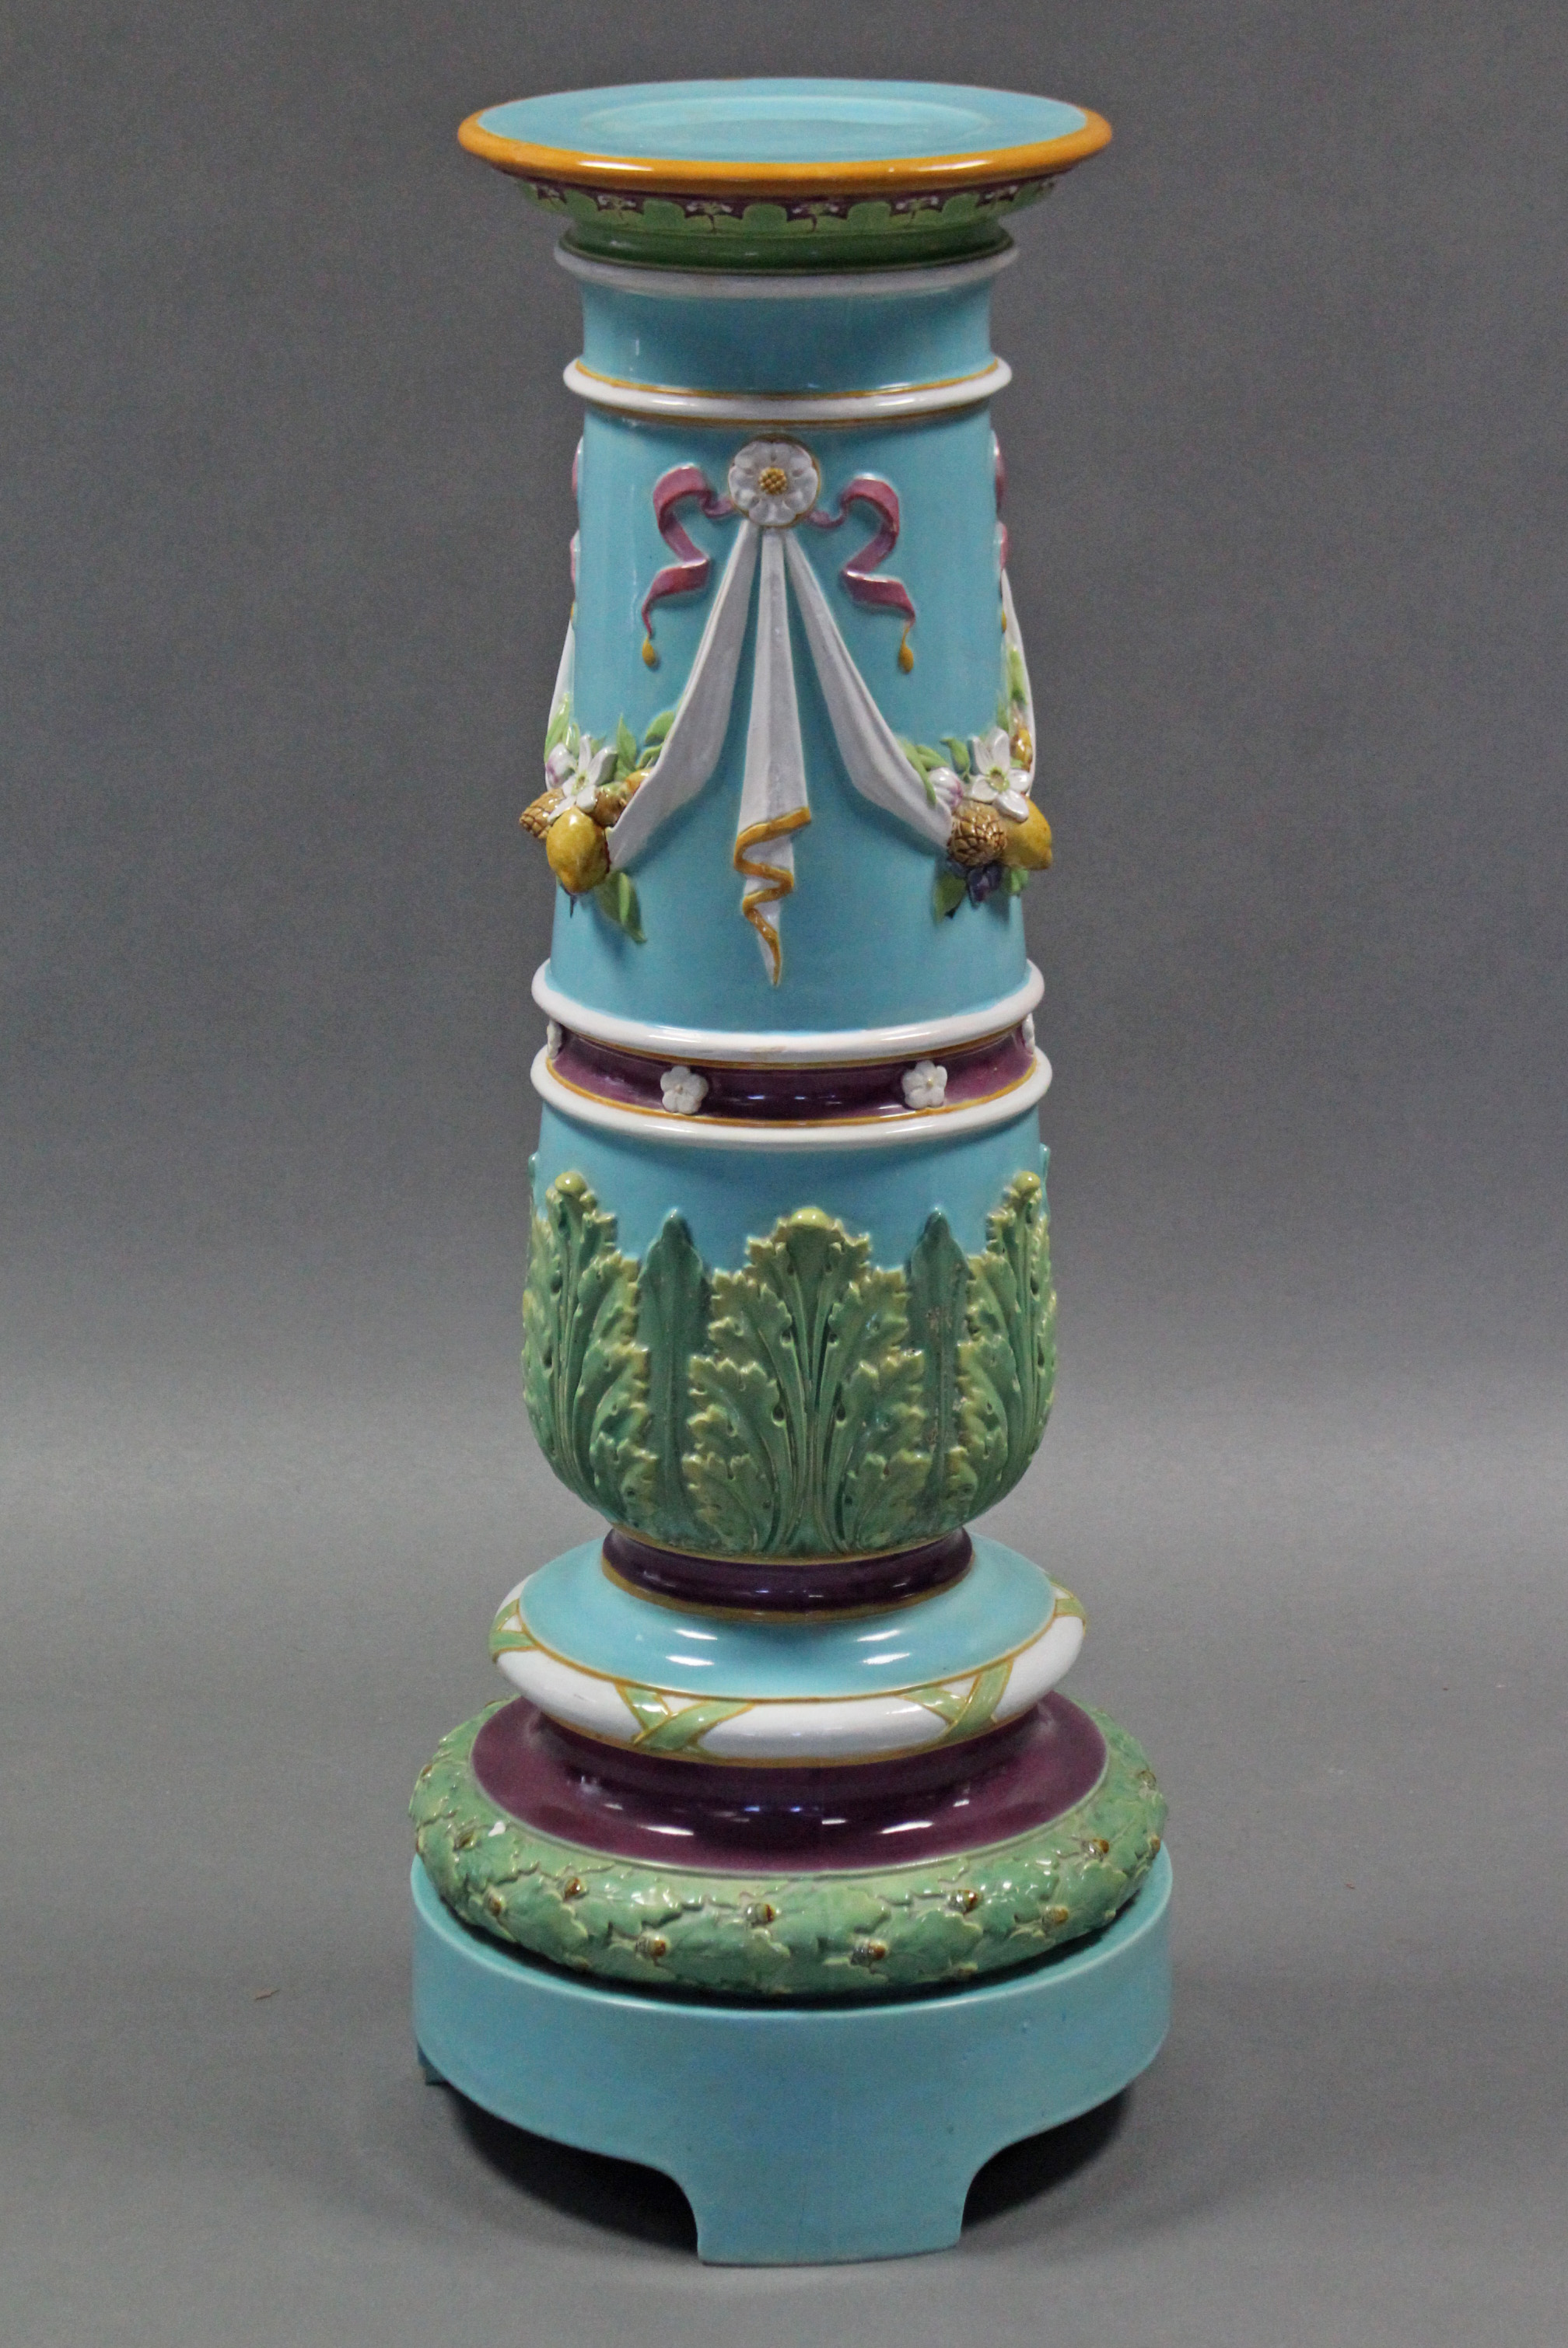 Lot 174 - A 19th century MINTON MAJOLICA JARDINIERE STAND, of pale blue ground, the tapered cylindrical body